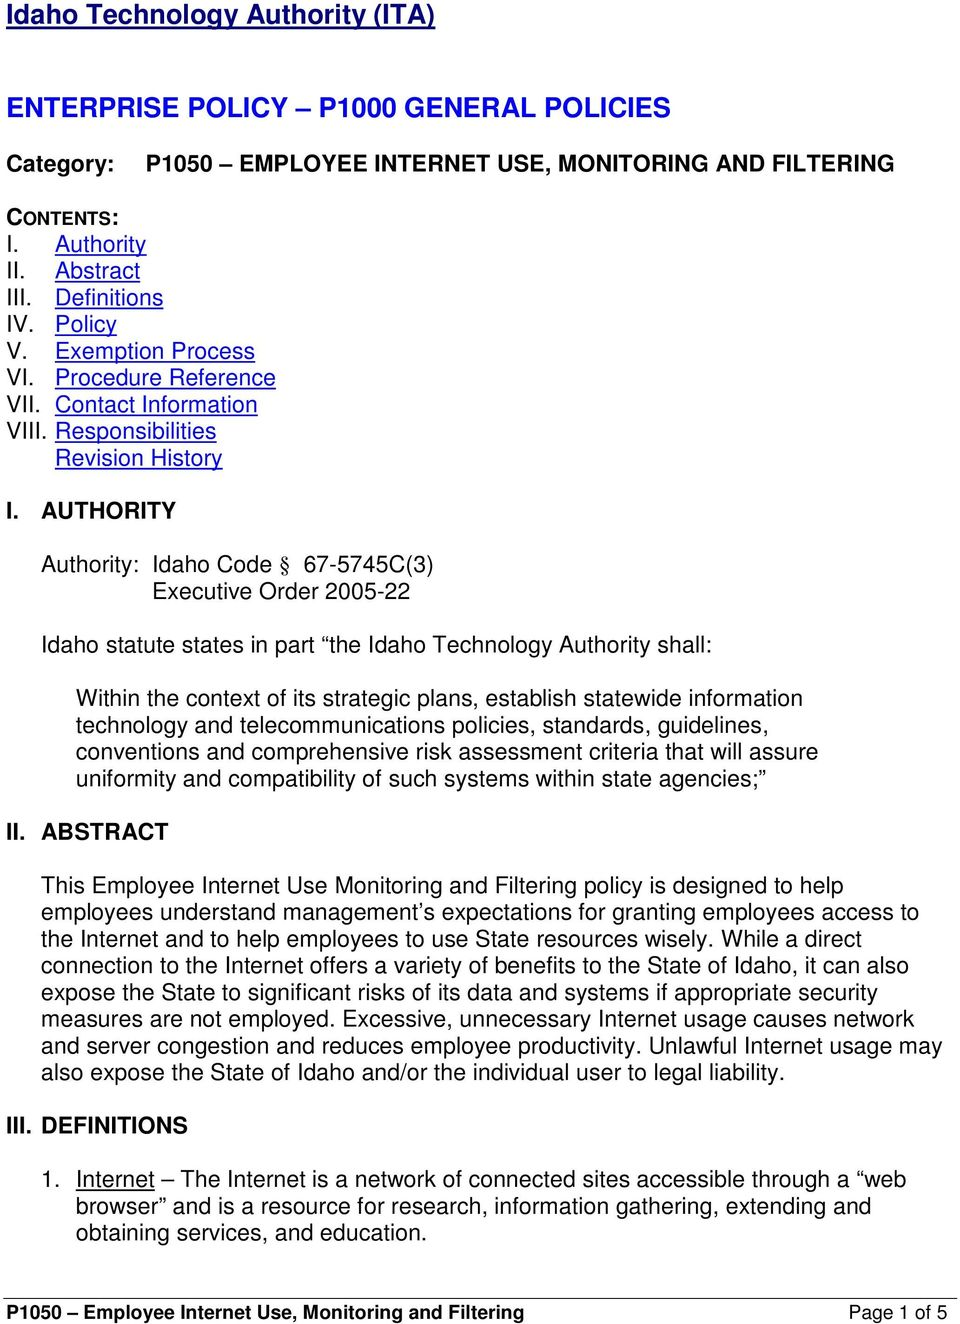 AUTHORITY Authority: Idaho Code 67-5745C(3) Executive Order 2005-22 Idaho statute states in part the Idaho Technology Authority shall: Within the context of its strategic plans, establish statewide